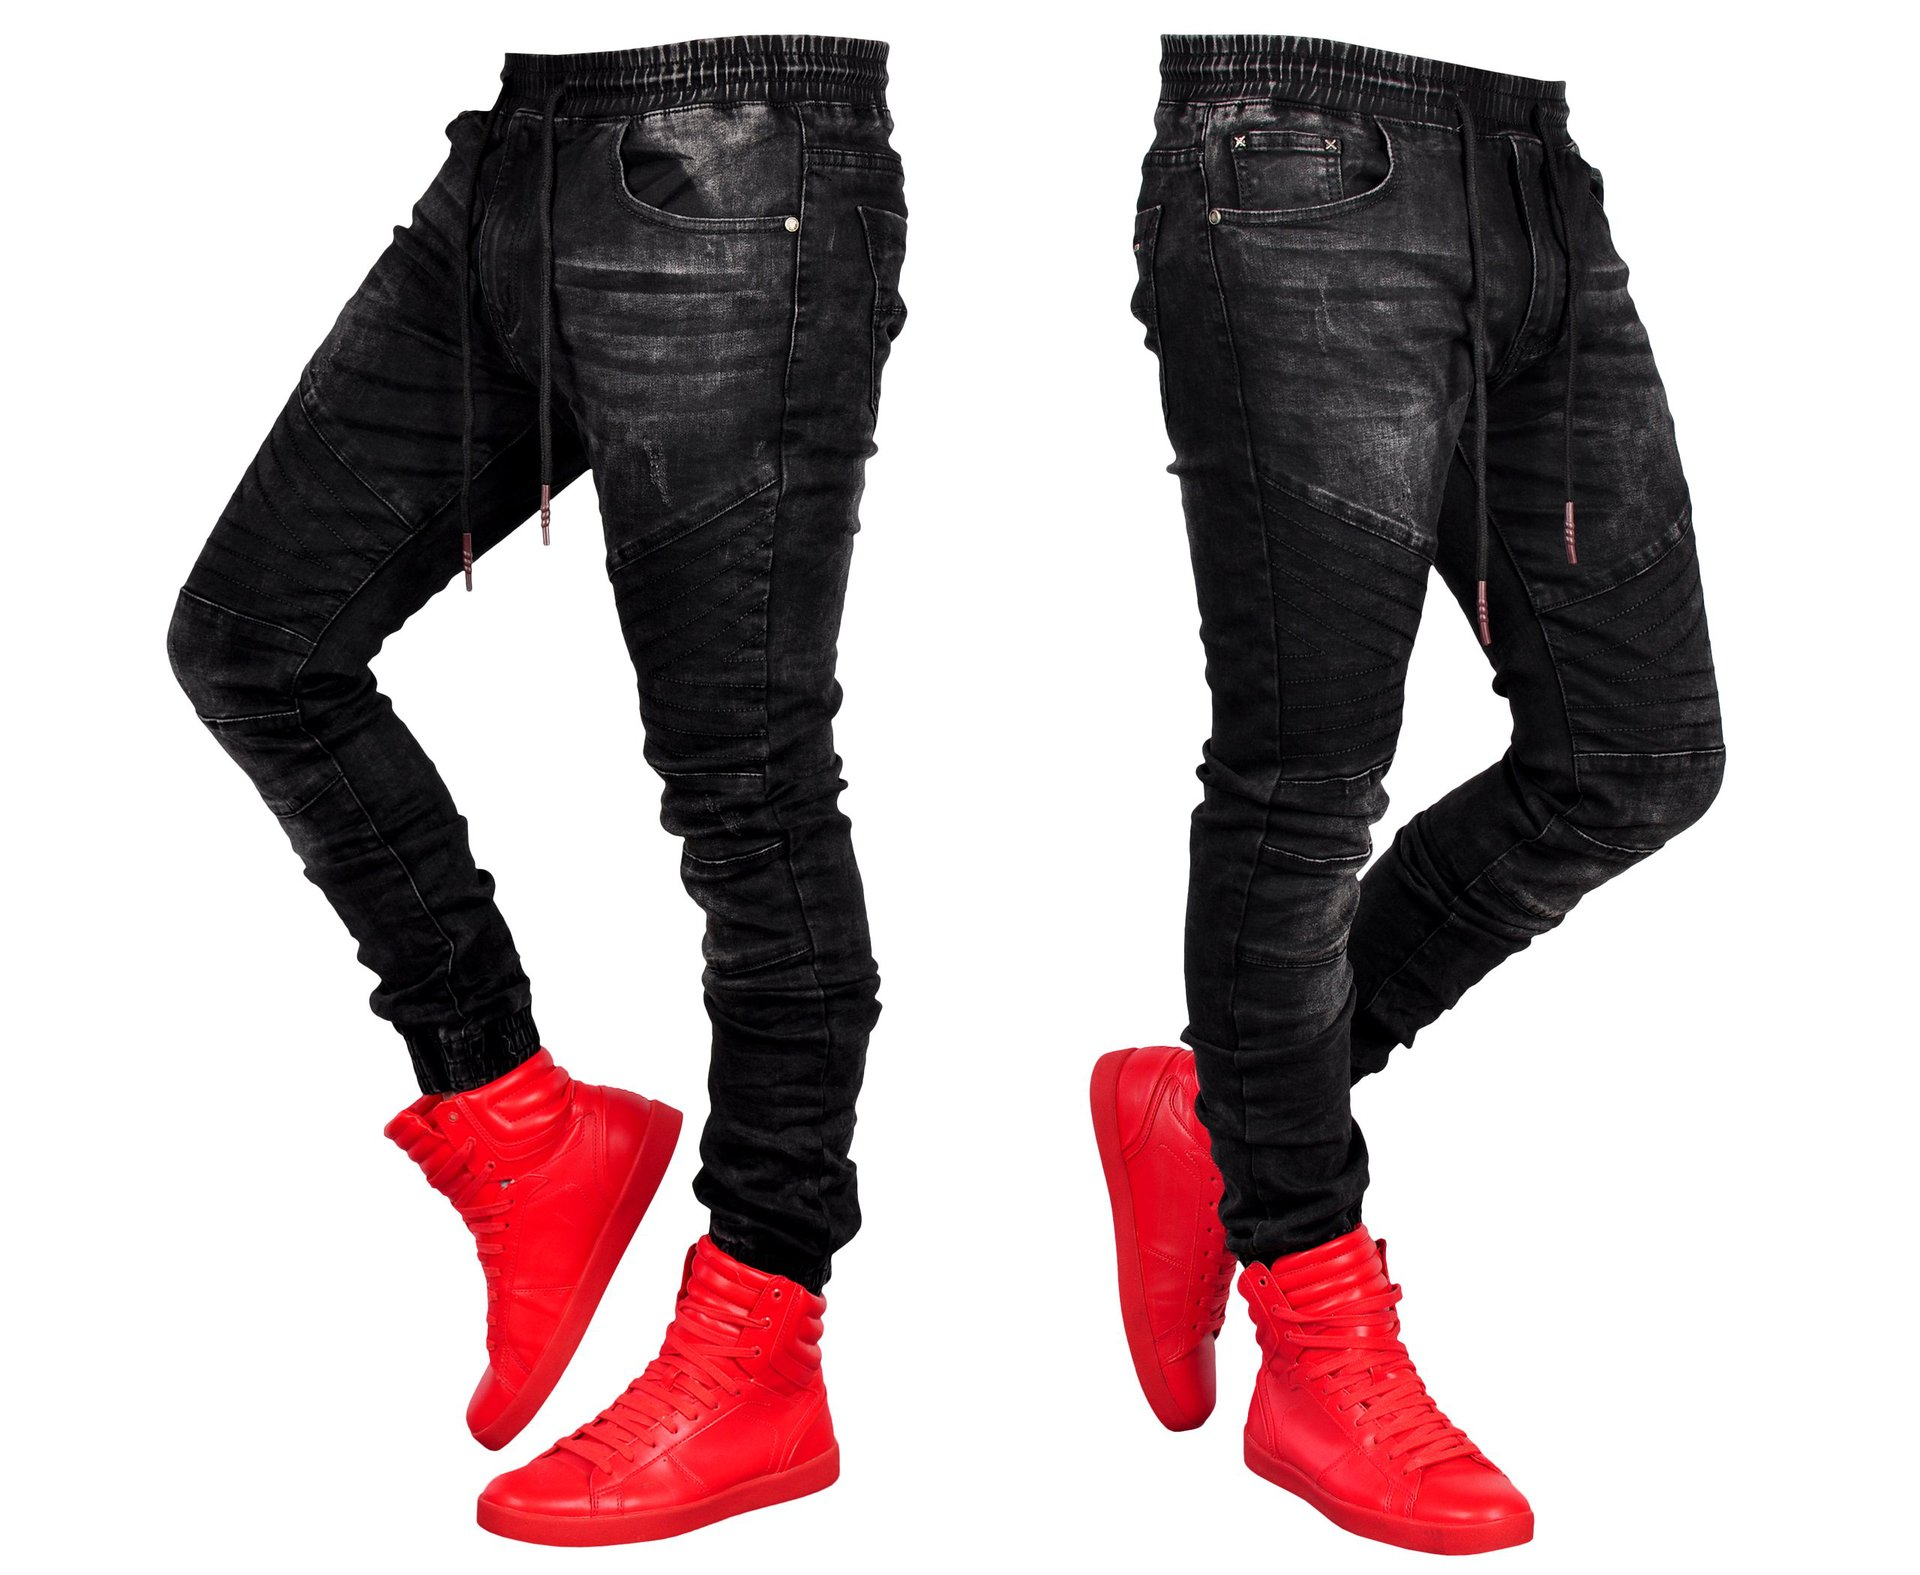 New Ripped Jeans For Men Slim Biker Zipper Denim Jeans Skinny Frayed Pants Distressed Rip Trousers Black Jeans Drop Shipping